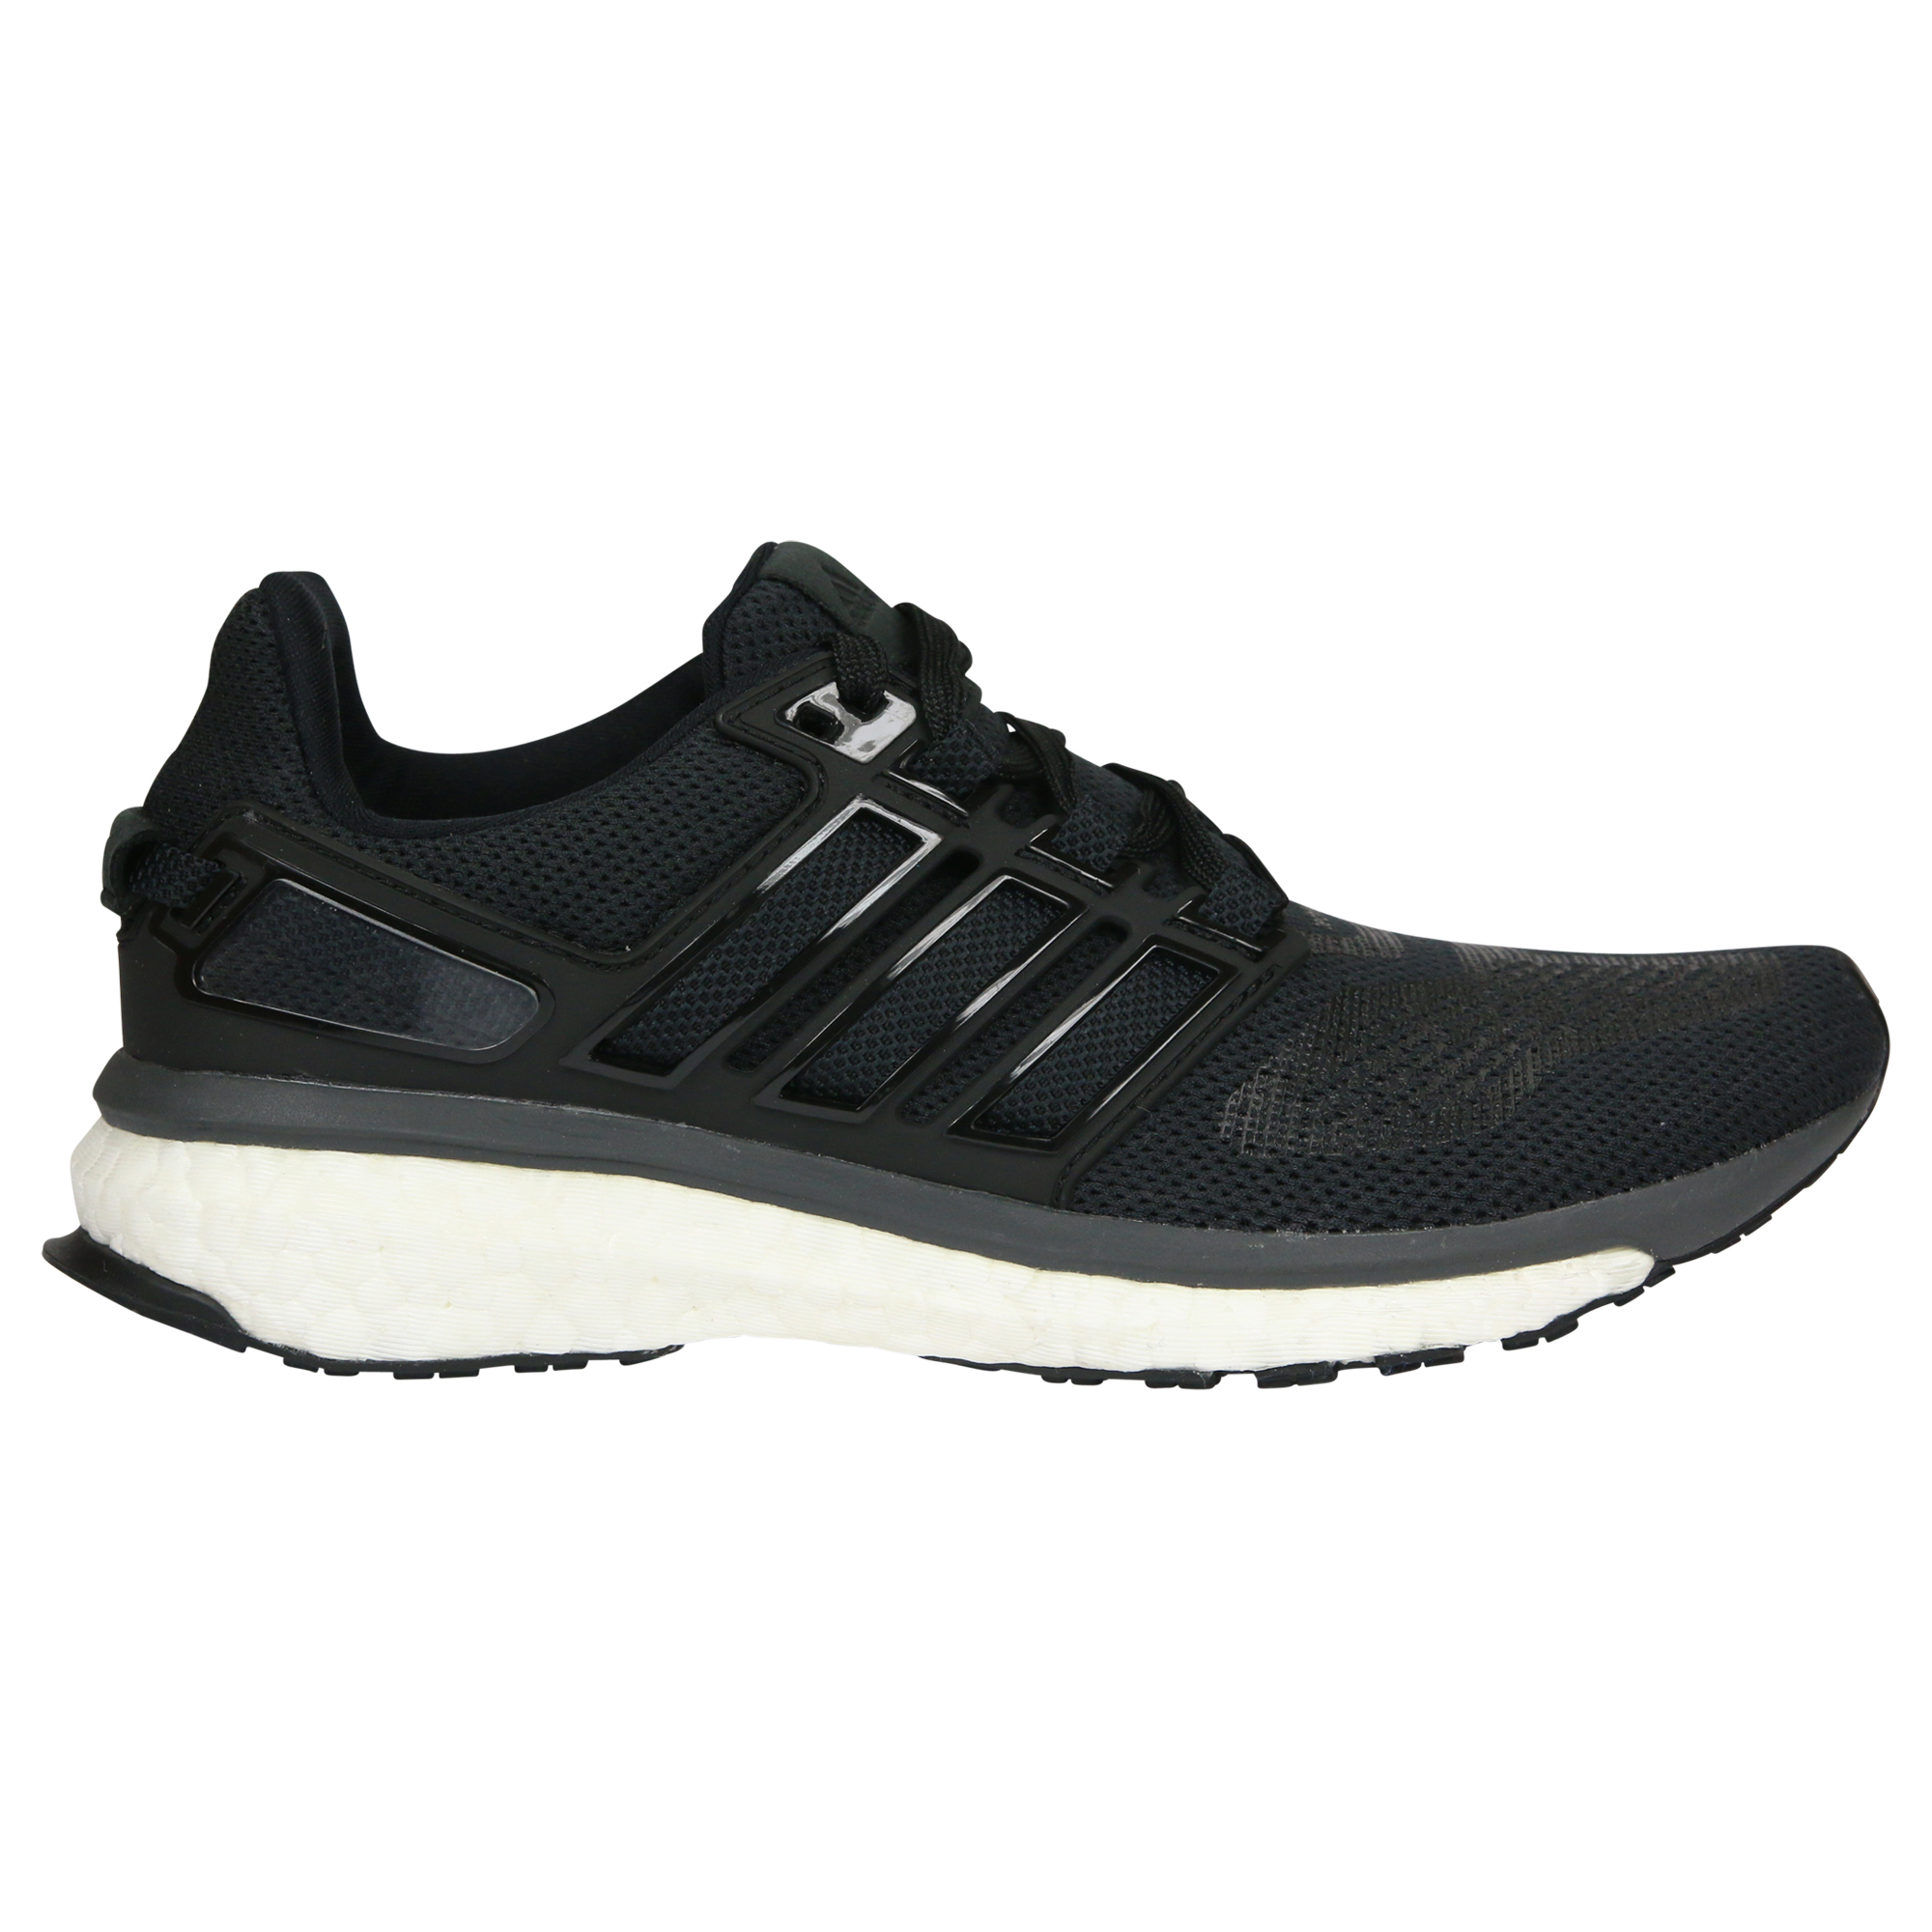 adidas energy boost 3 laufschuhe running schuhe turnschuhe sneaker herren damen ebay. Black Bedroom Furniture Sets. Home Design Ideas